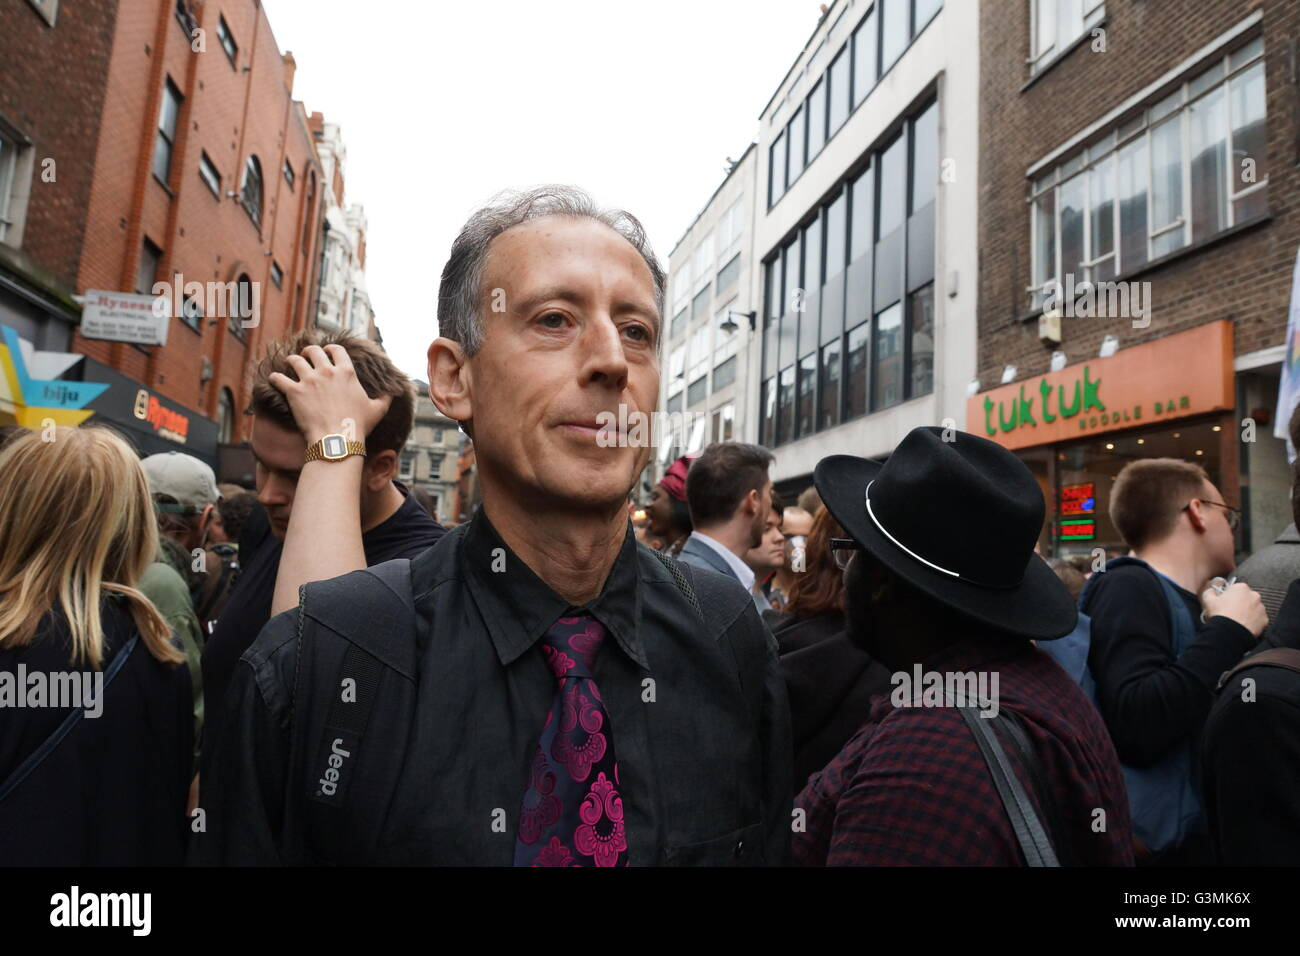 Peter Tatchell, eminent gay rights campaigner